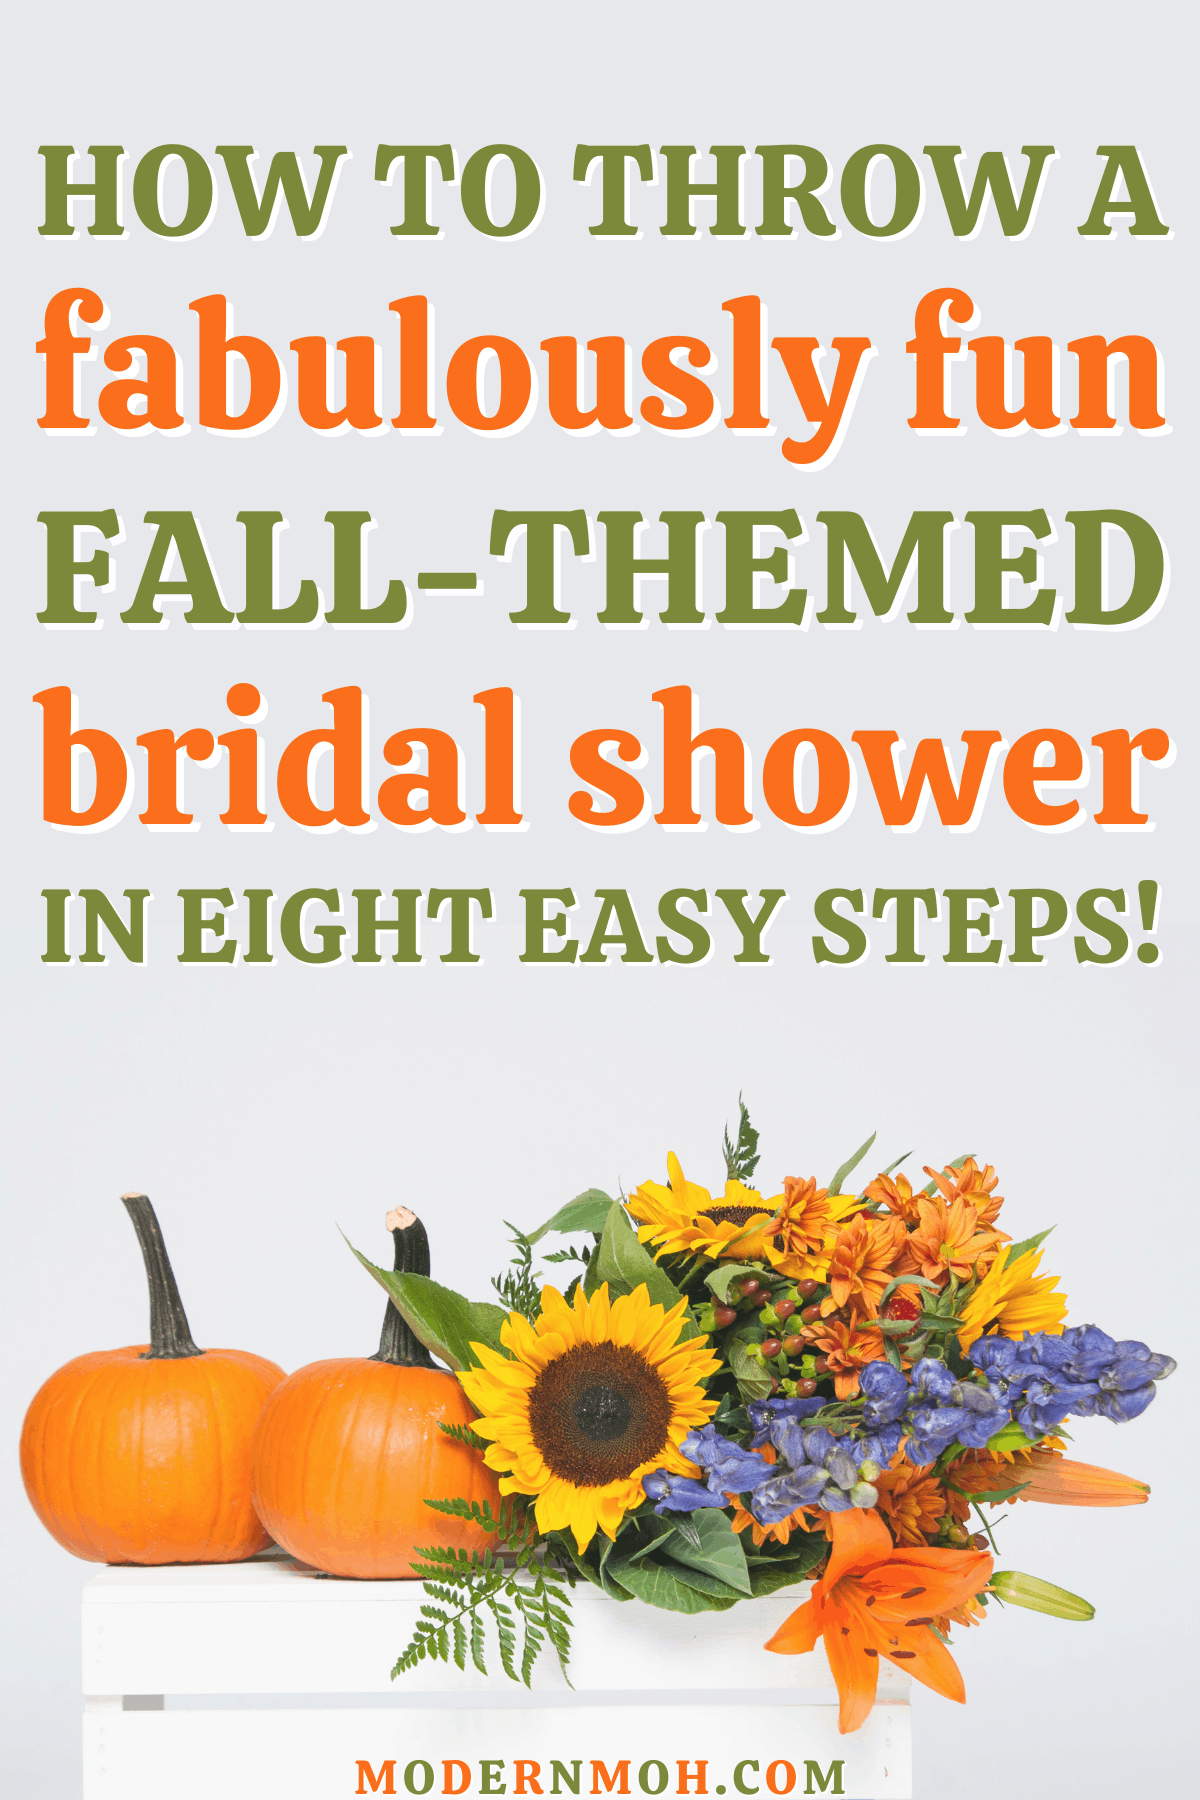 How to Throw a Fall-Themed Bridal Shower